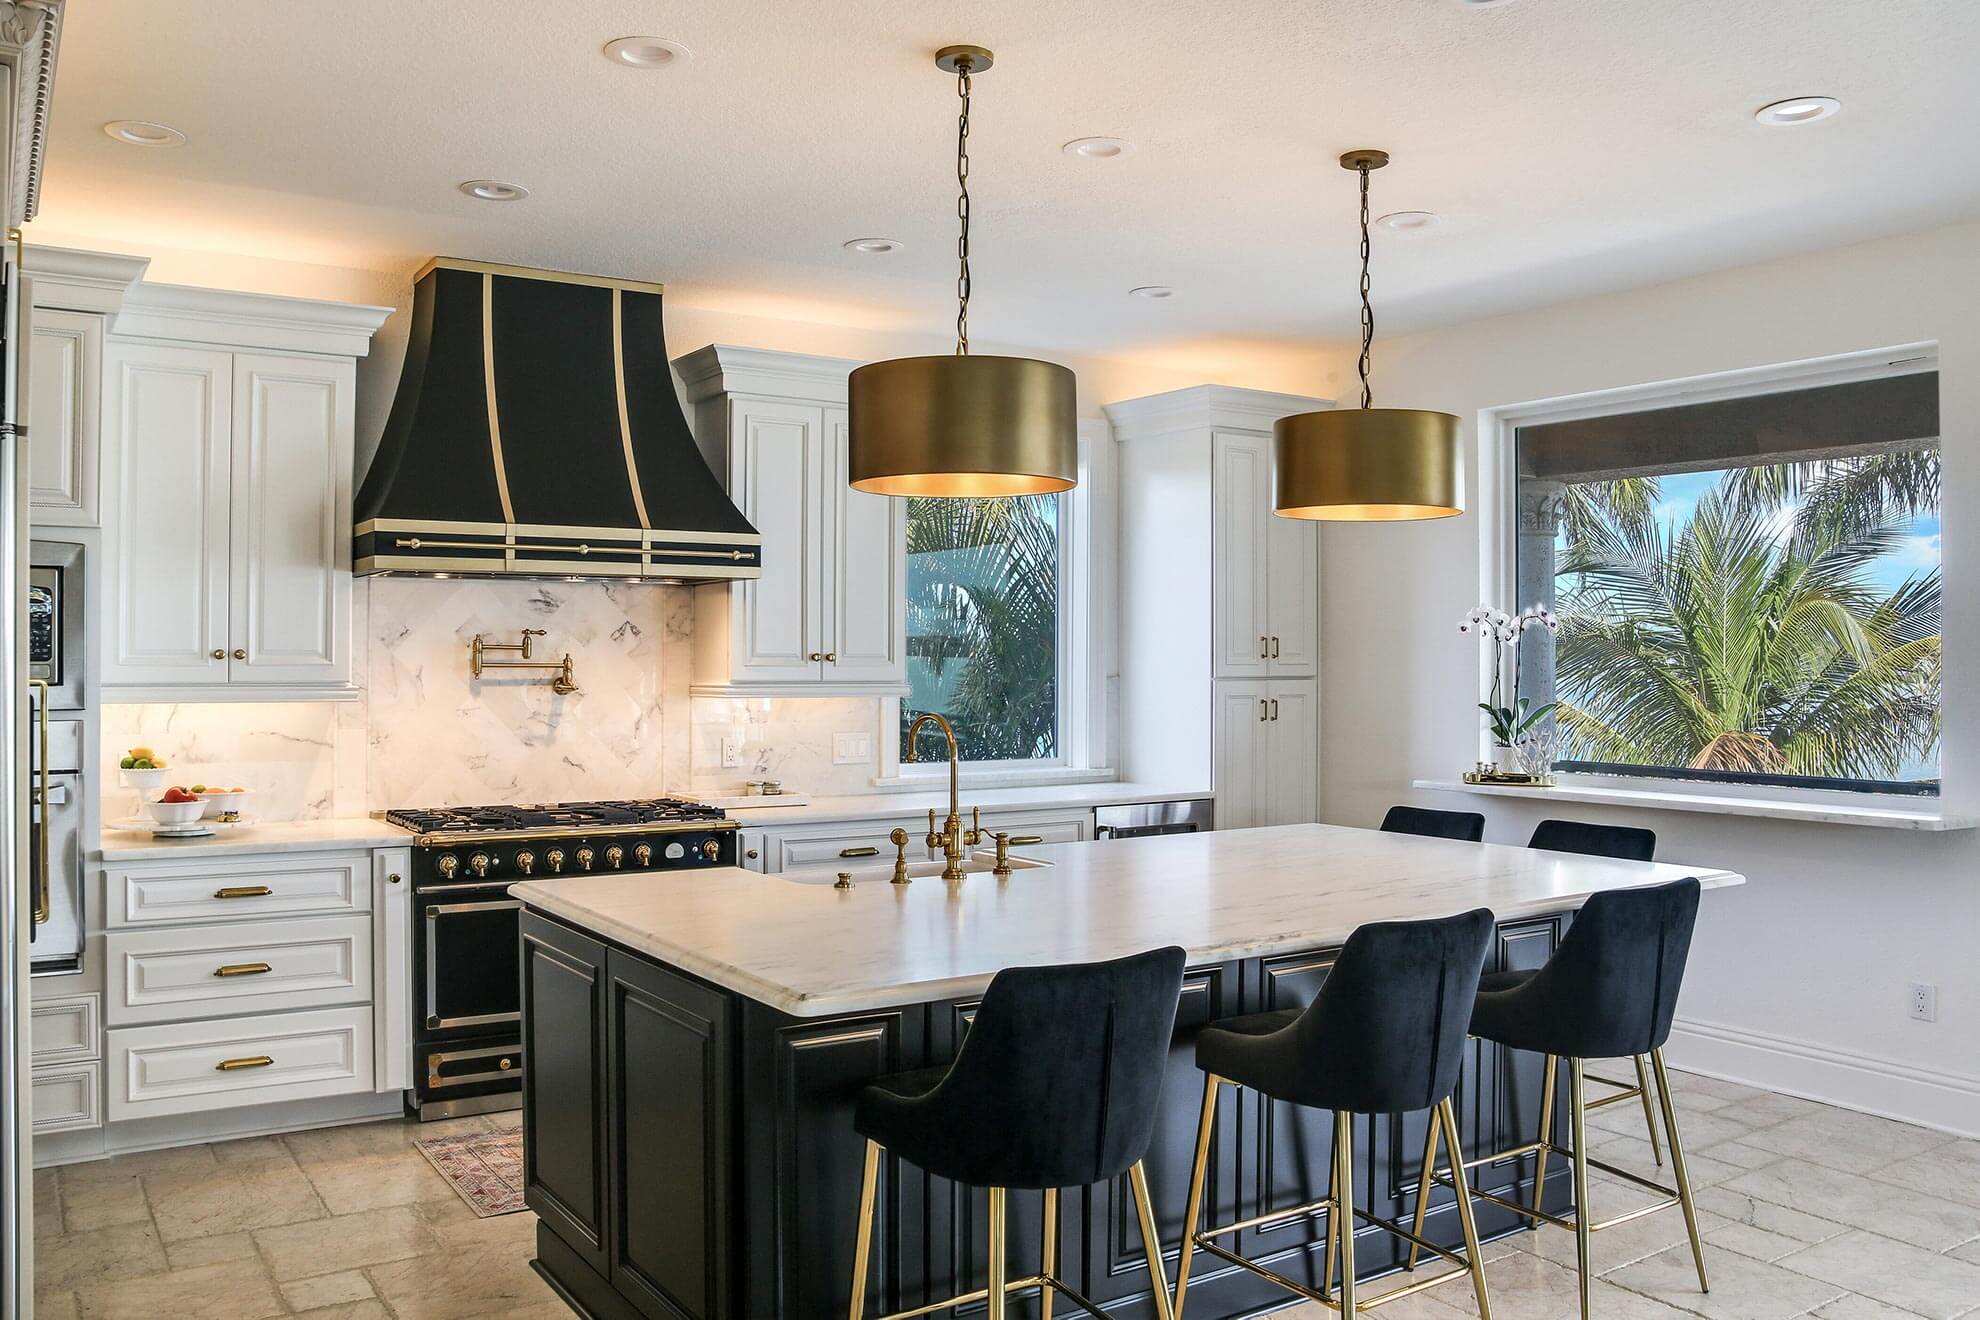 Traditional kitchen with chandelier and large custom range hood made from stainless steel with gold trim and rivets.